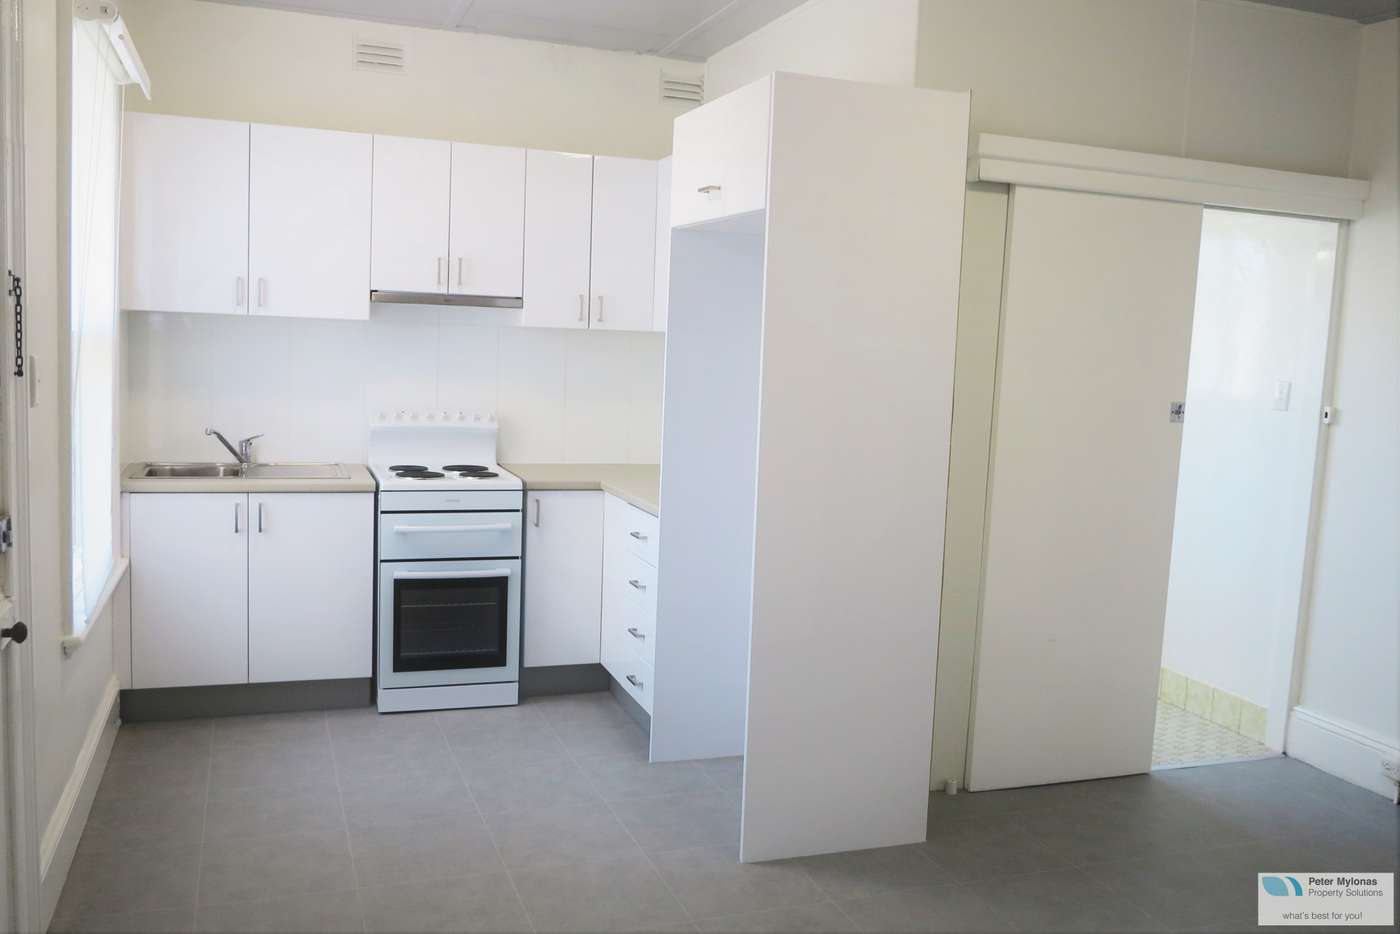 Main view of Homely apartment listing, 1/105 Auburn Street, Goulburn NSW 2580